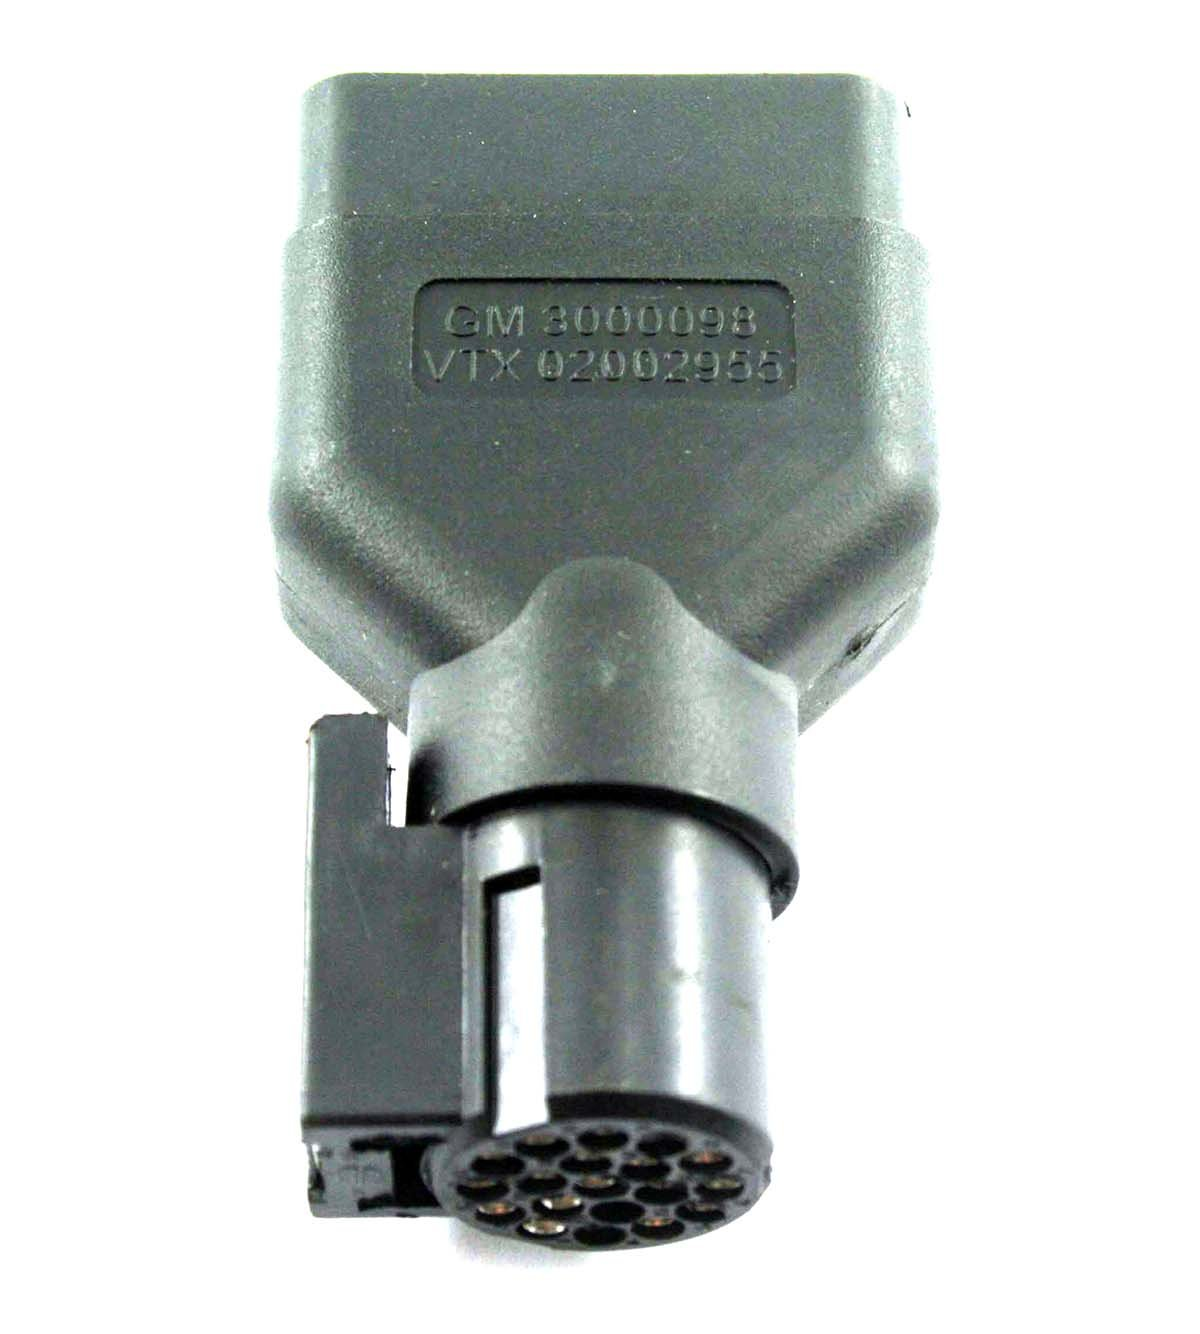 XtremeAmazing Rplacement Connector VETRONIX 02002955